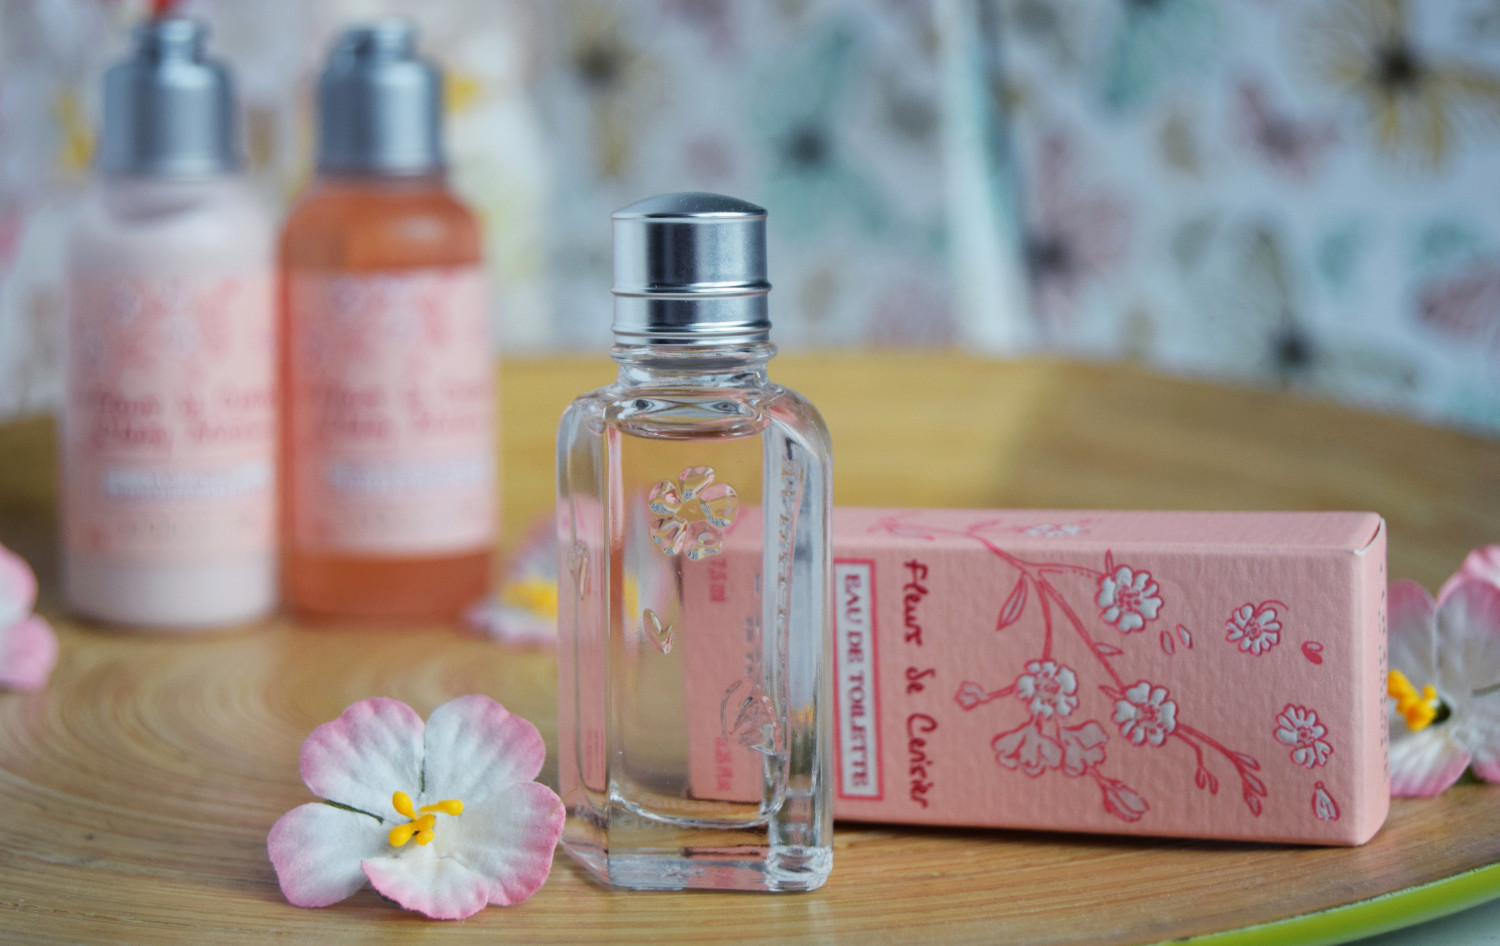 Cherry_blossom_L'Occitane_Zalabell_beauty_1